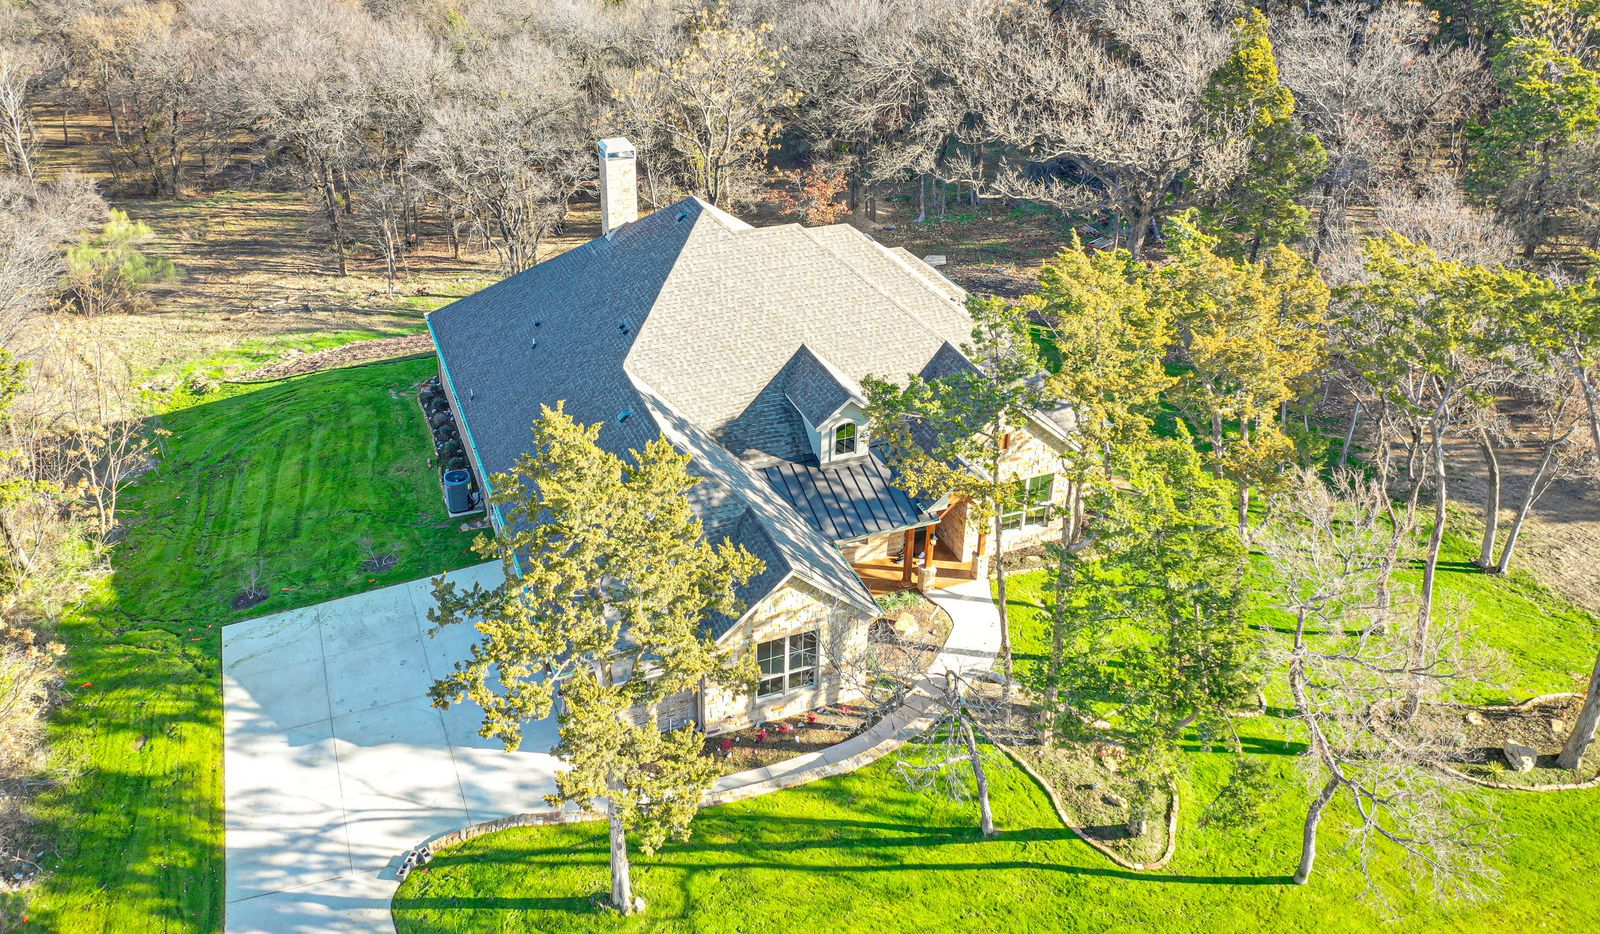 The traditional farmhouse design at 2427 Hardwick is situated on over 1 wooded acre in the Summit of Lake Ridge.